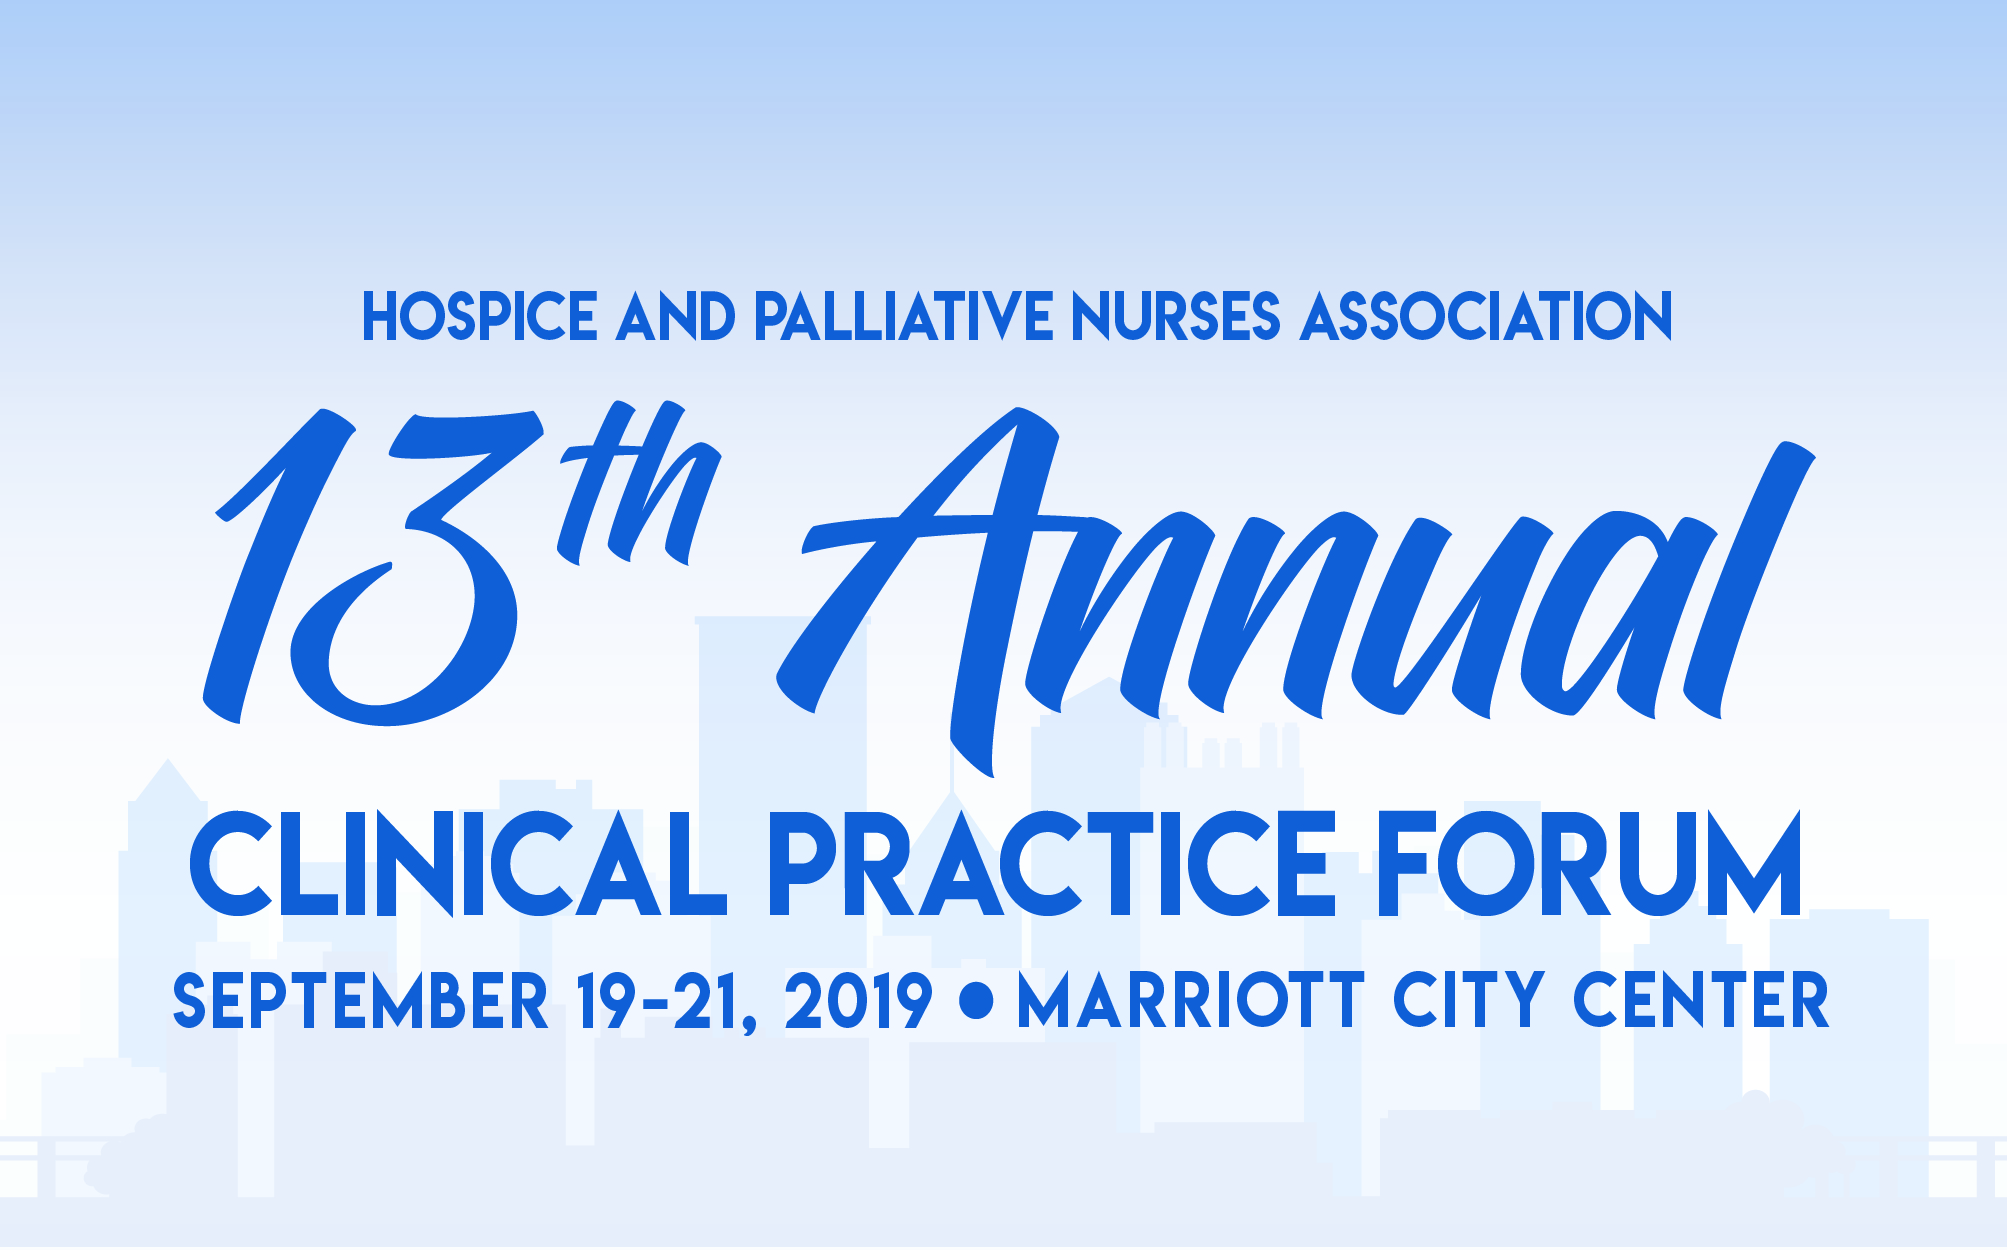 13th Annual HPNA Clinical Practice Forum